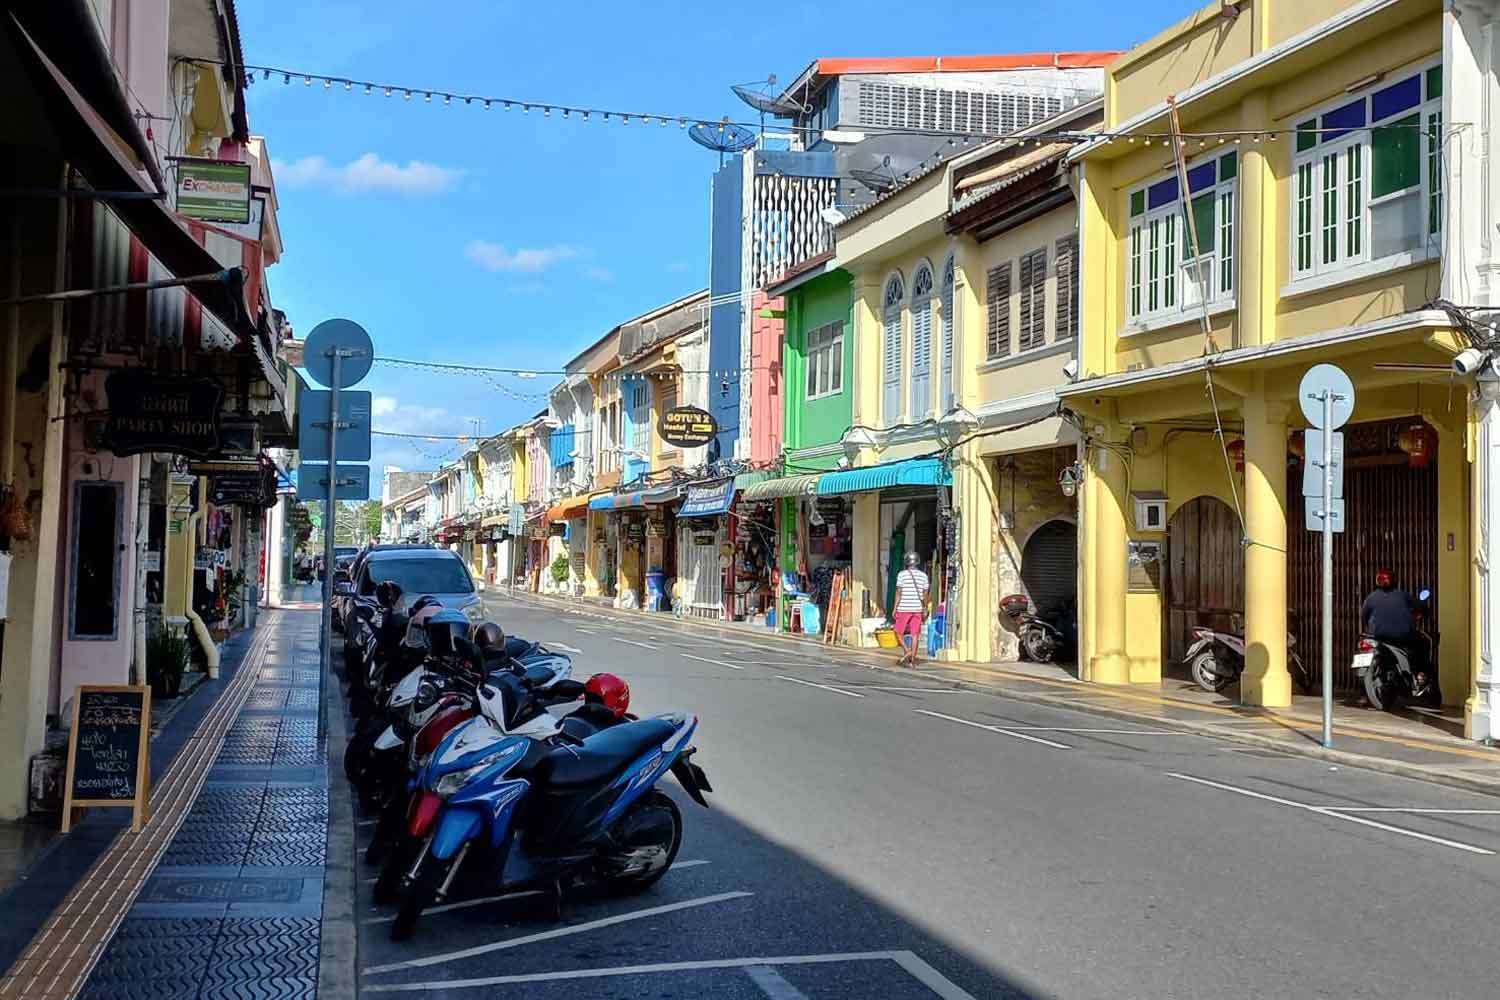 Downtown Phuket was quiet on Wednesday, before the tourist-reliant province reopens to foreign visitors on Thursday. (Photo: Achadthaya Chuenniran)